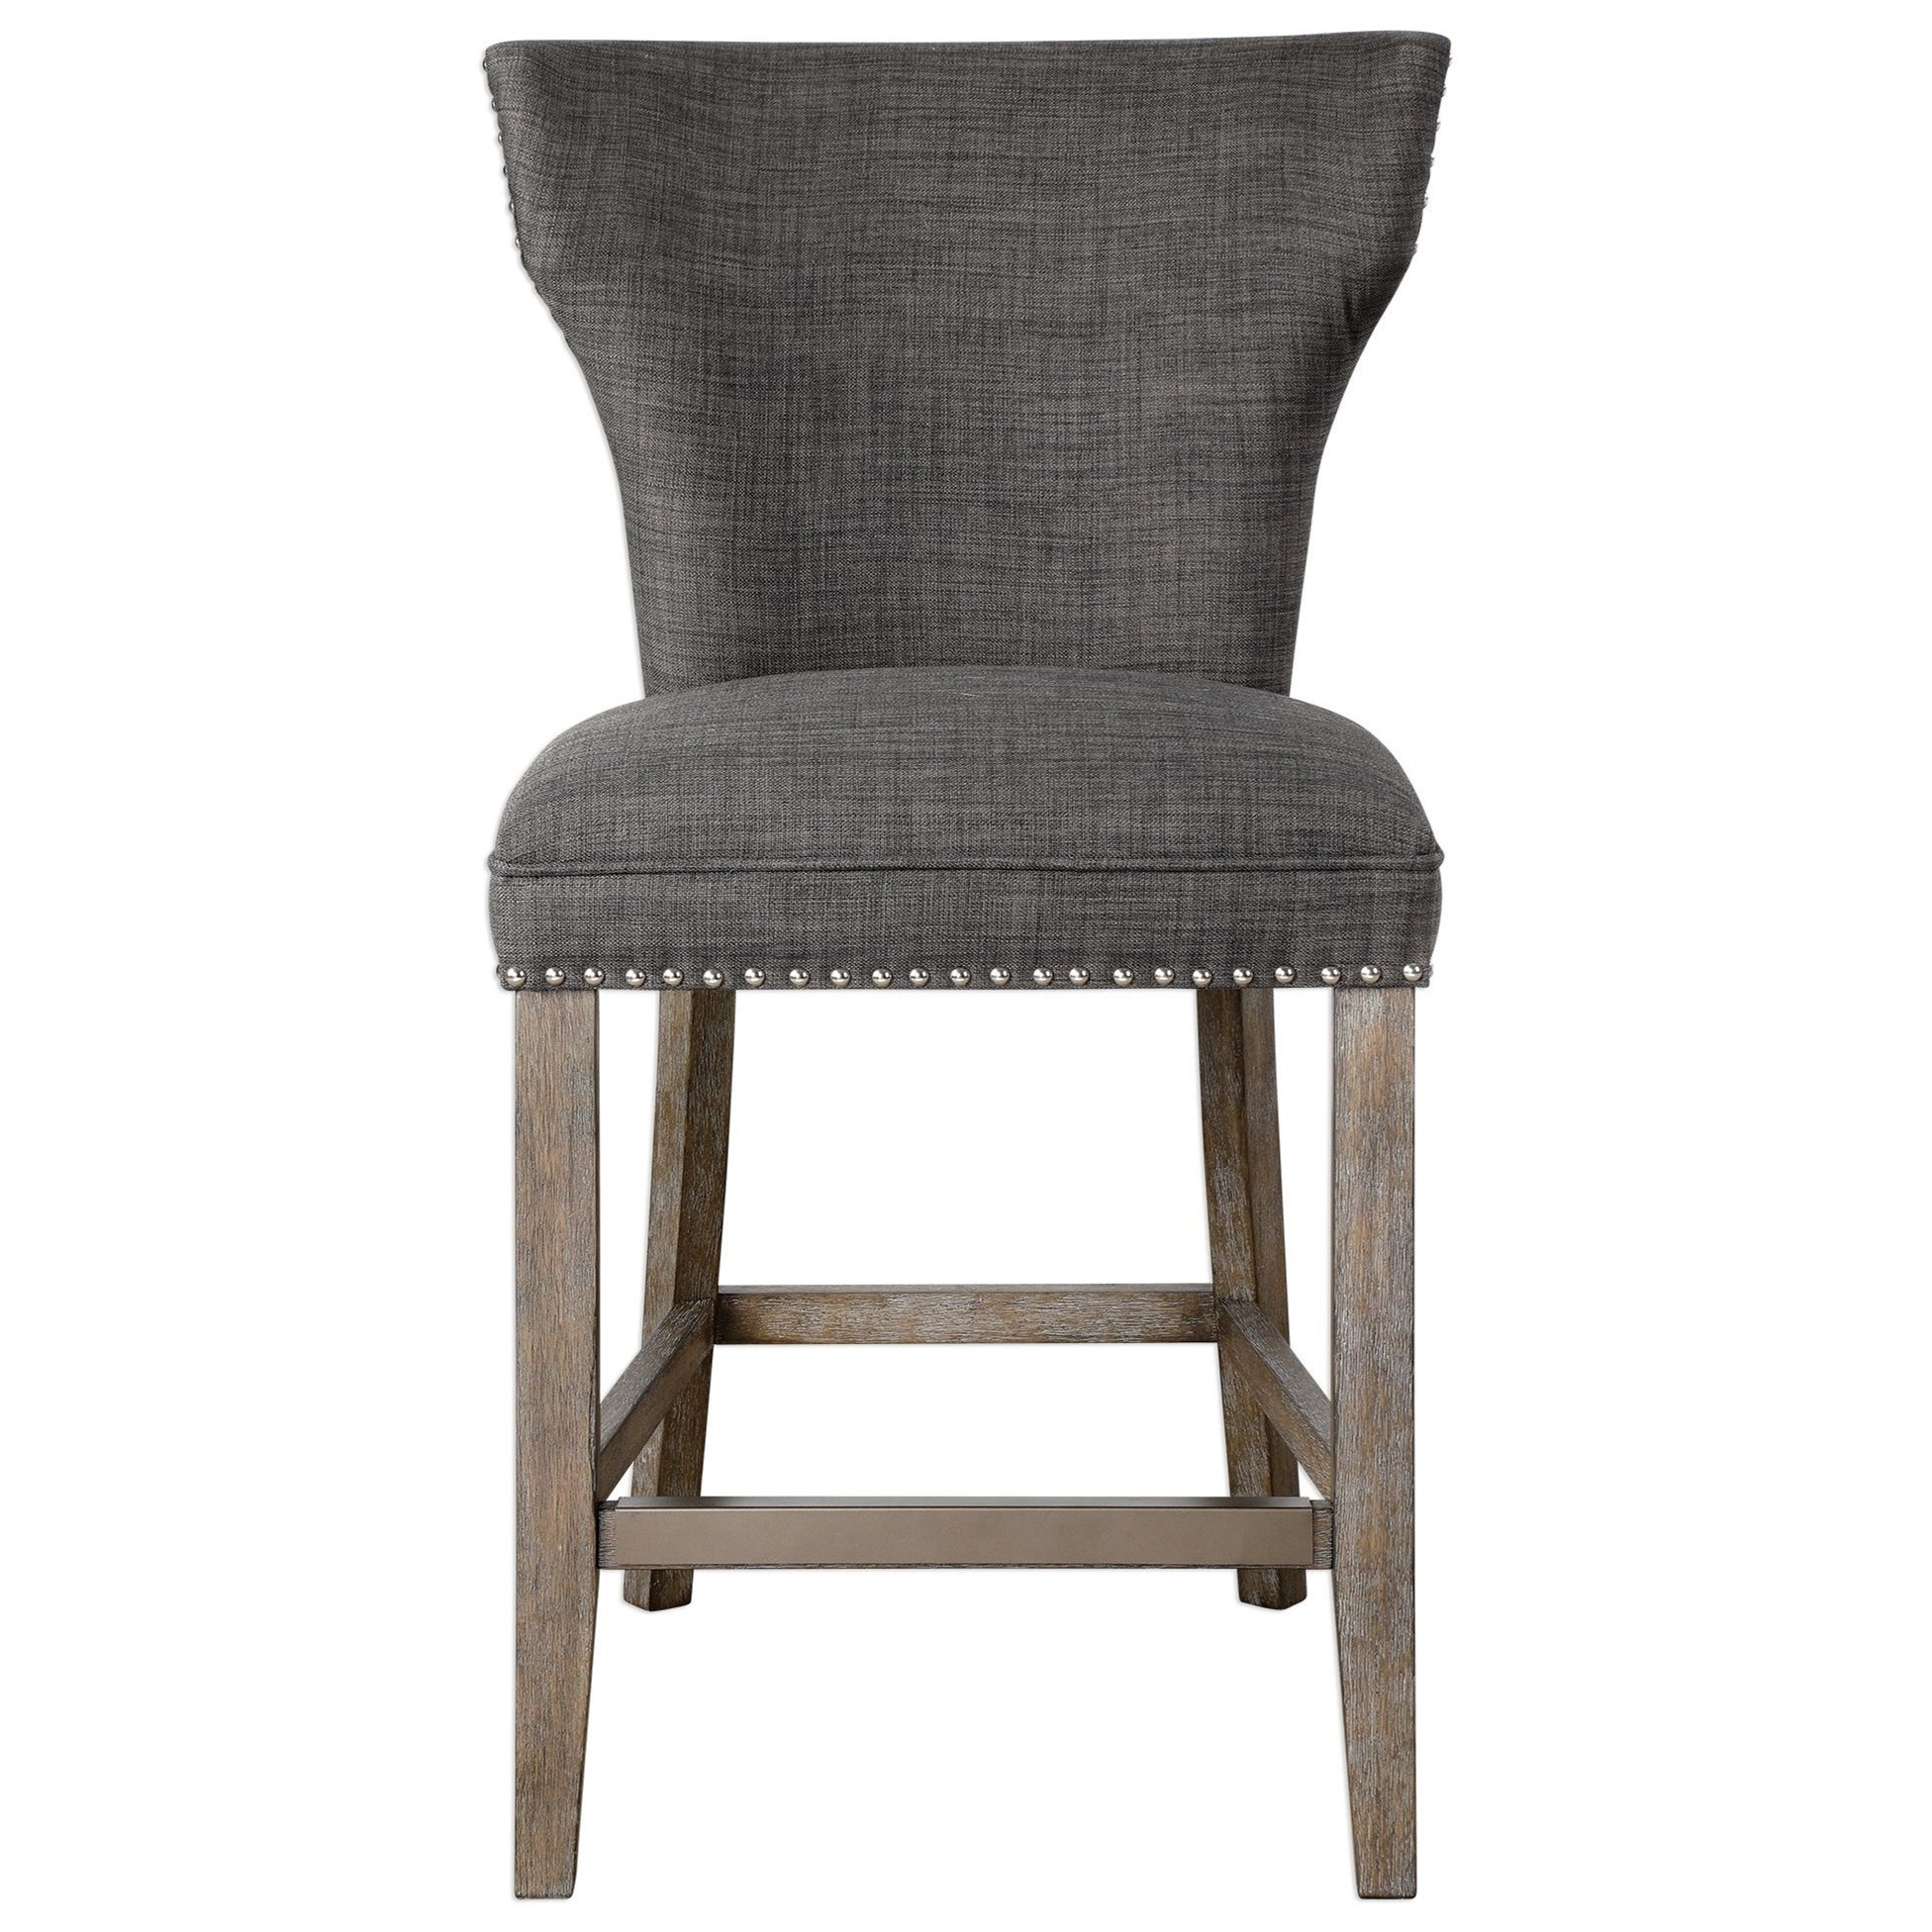 Accent Furniture - Stools Arnaud Charcoal Counter Stool by Uttermost at O'Dunk & O'Bright Furniture